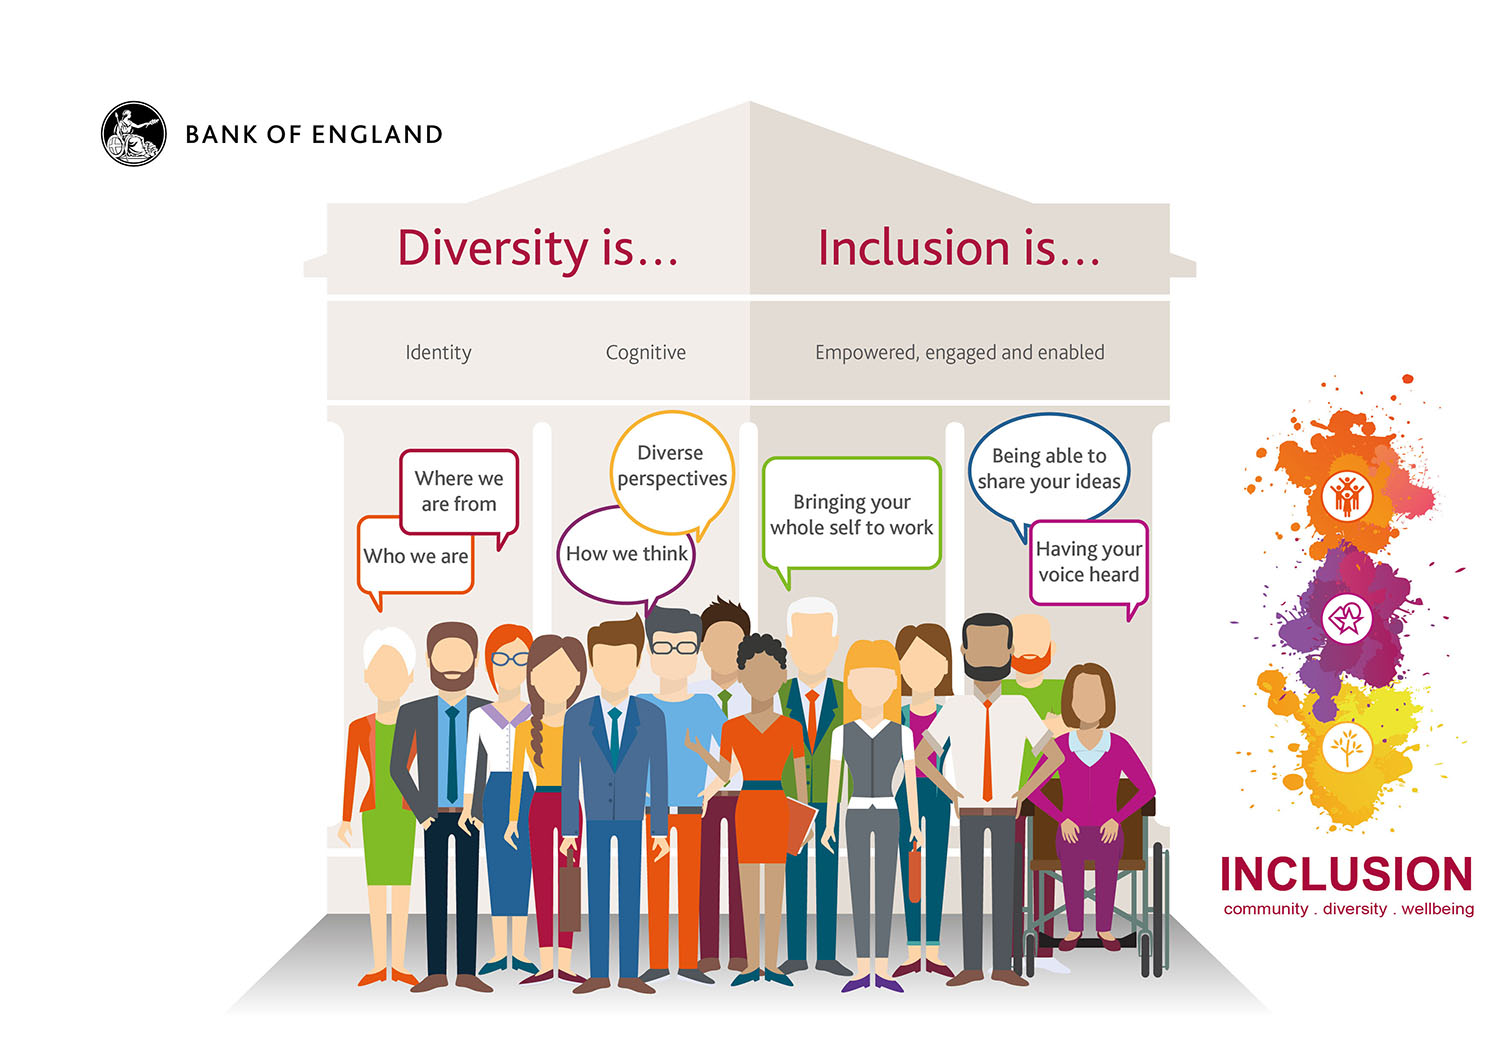 Diversity and inclusion at the Bank of England